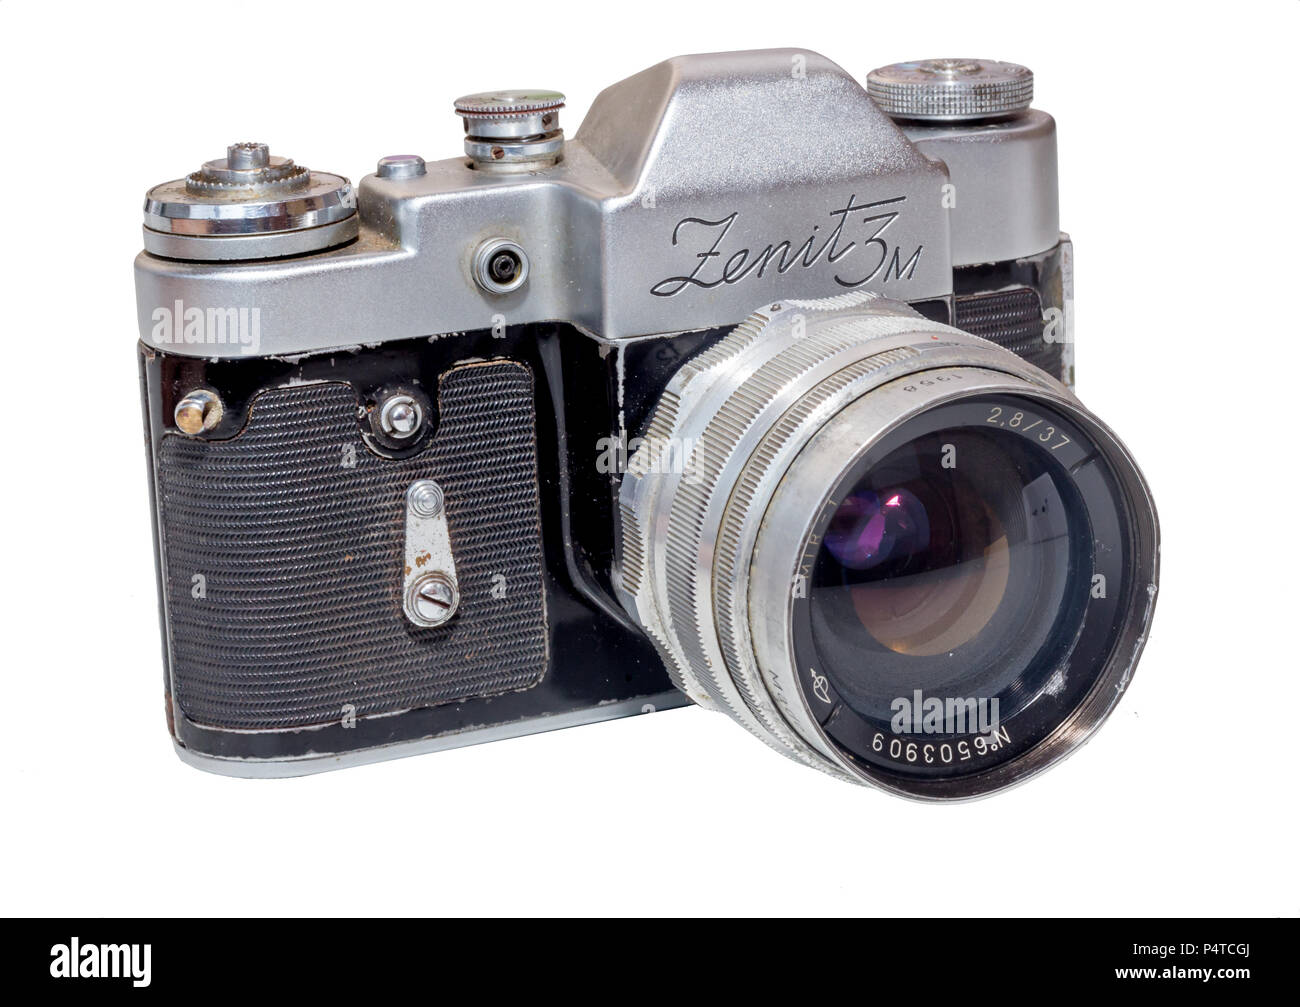 Russia, Vladivostok, 11/06/2017. Film camera Zenit-3M (M39 mount) with lens MIR-1 37mm f/2.8. Manufactured by KMZ (Krasnogorsk Mechanical Works, USSR) - Stock Image